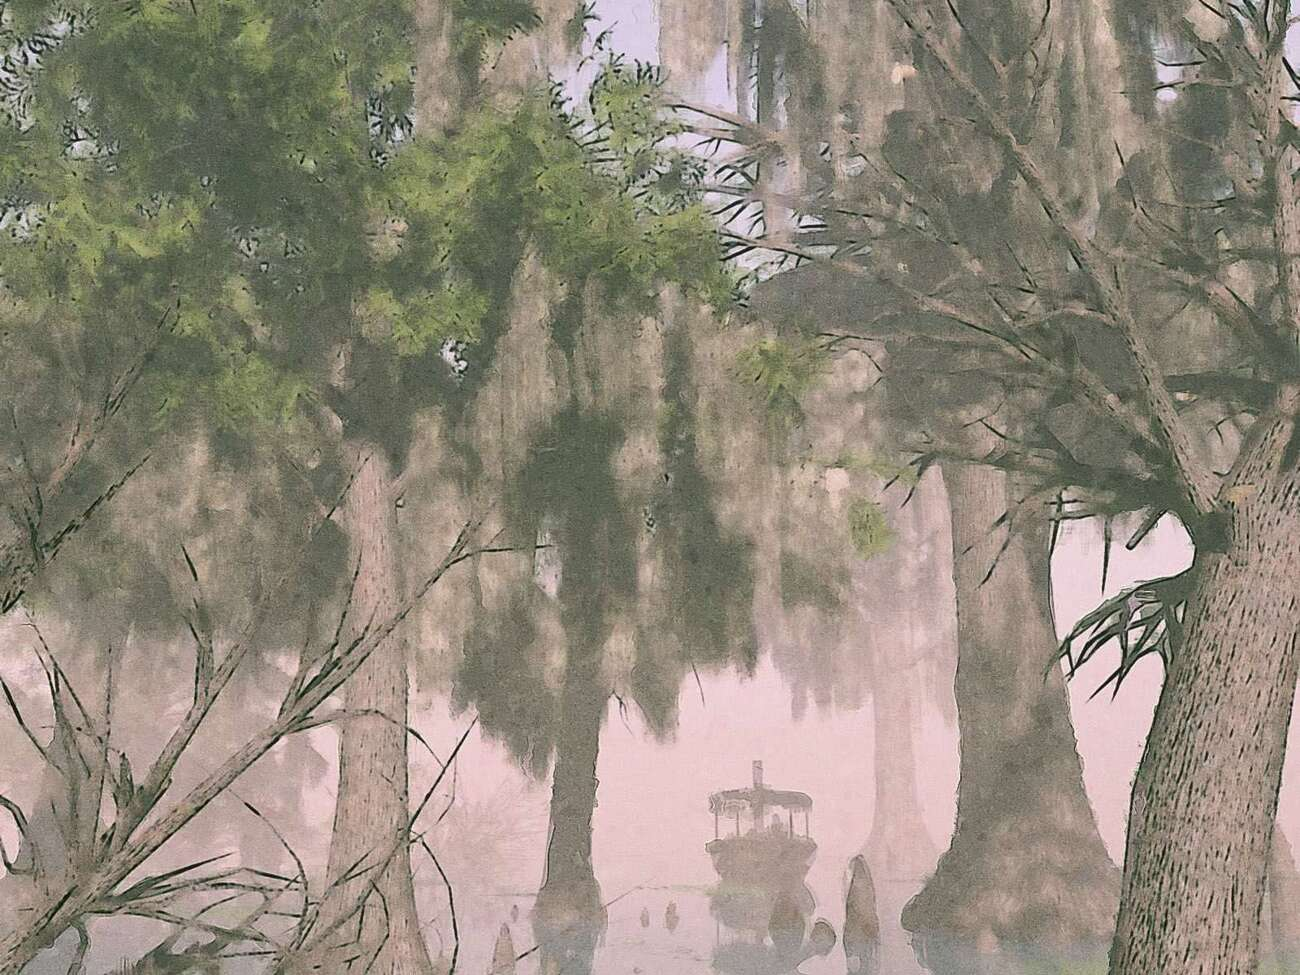 Cypress Swamp by rps53